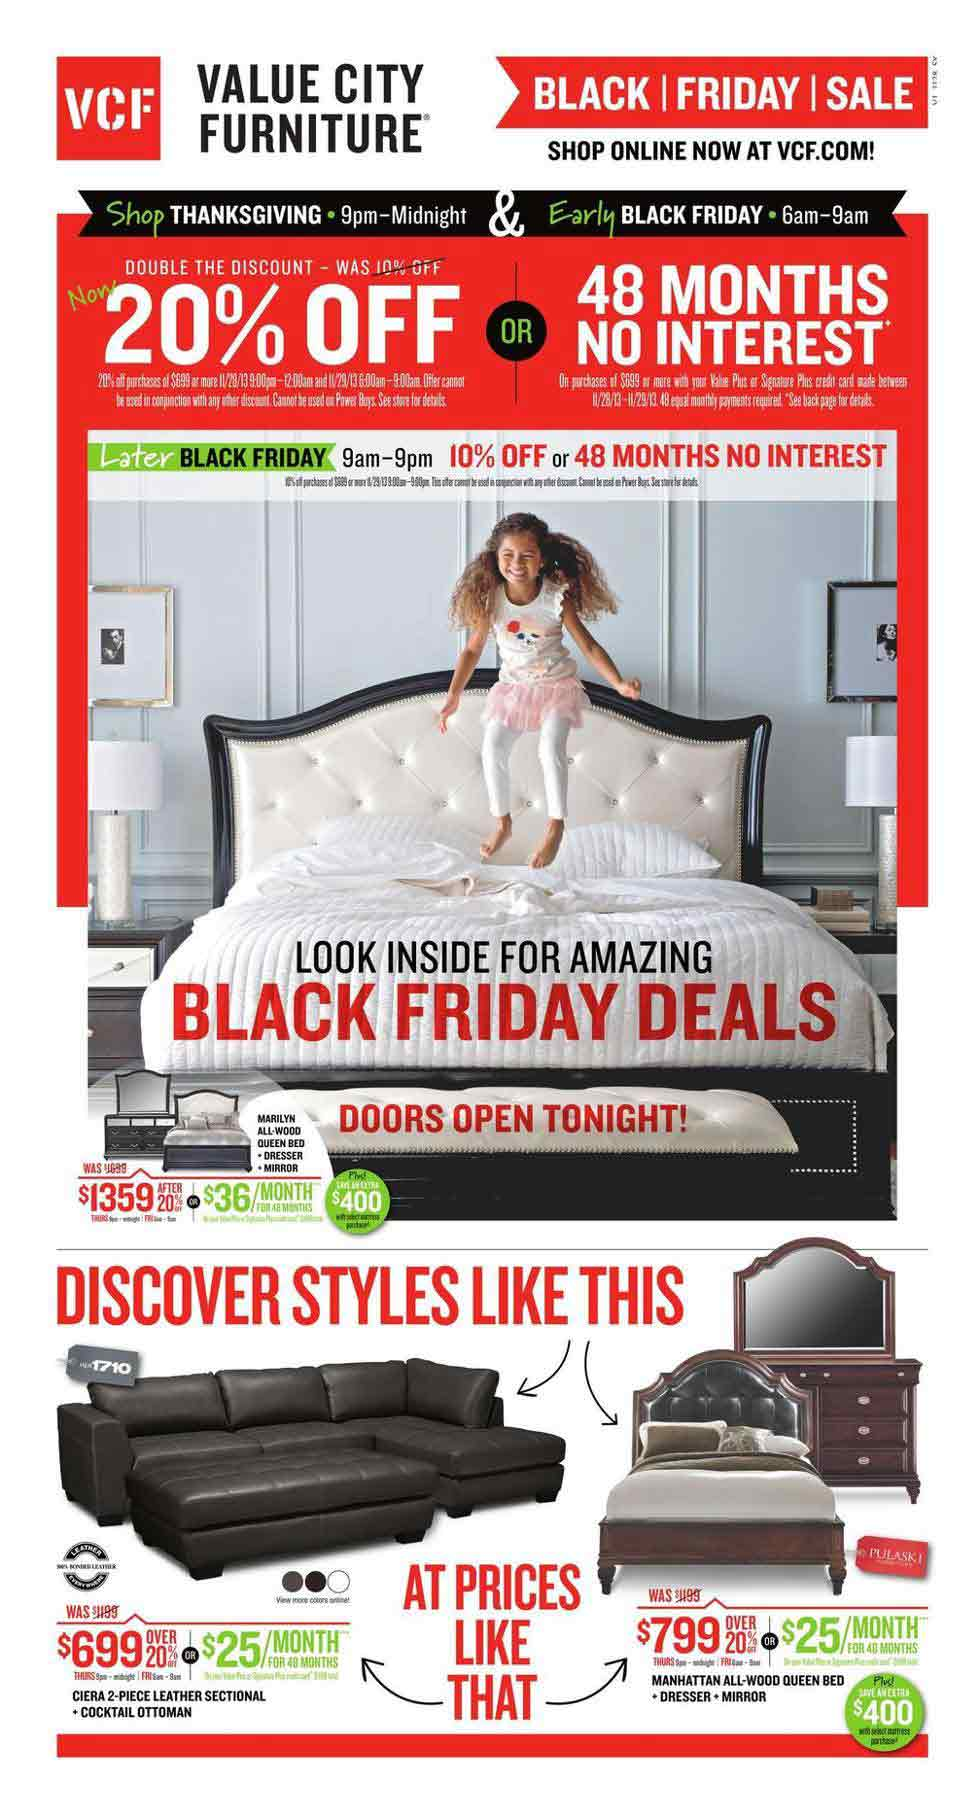 Sofa black friday deals sofa black friday deals 12 with for Furniture black friday